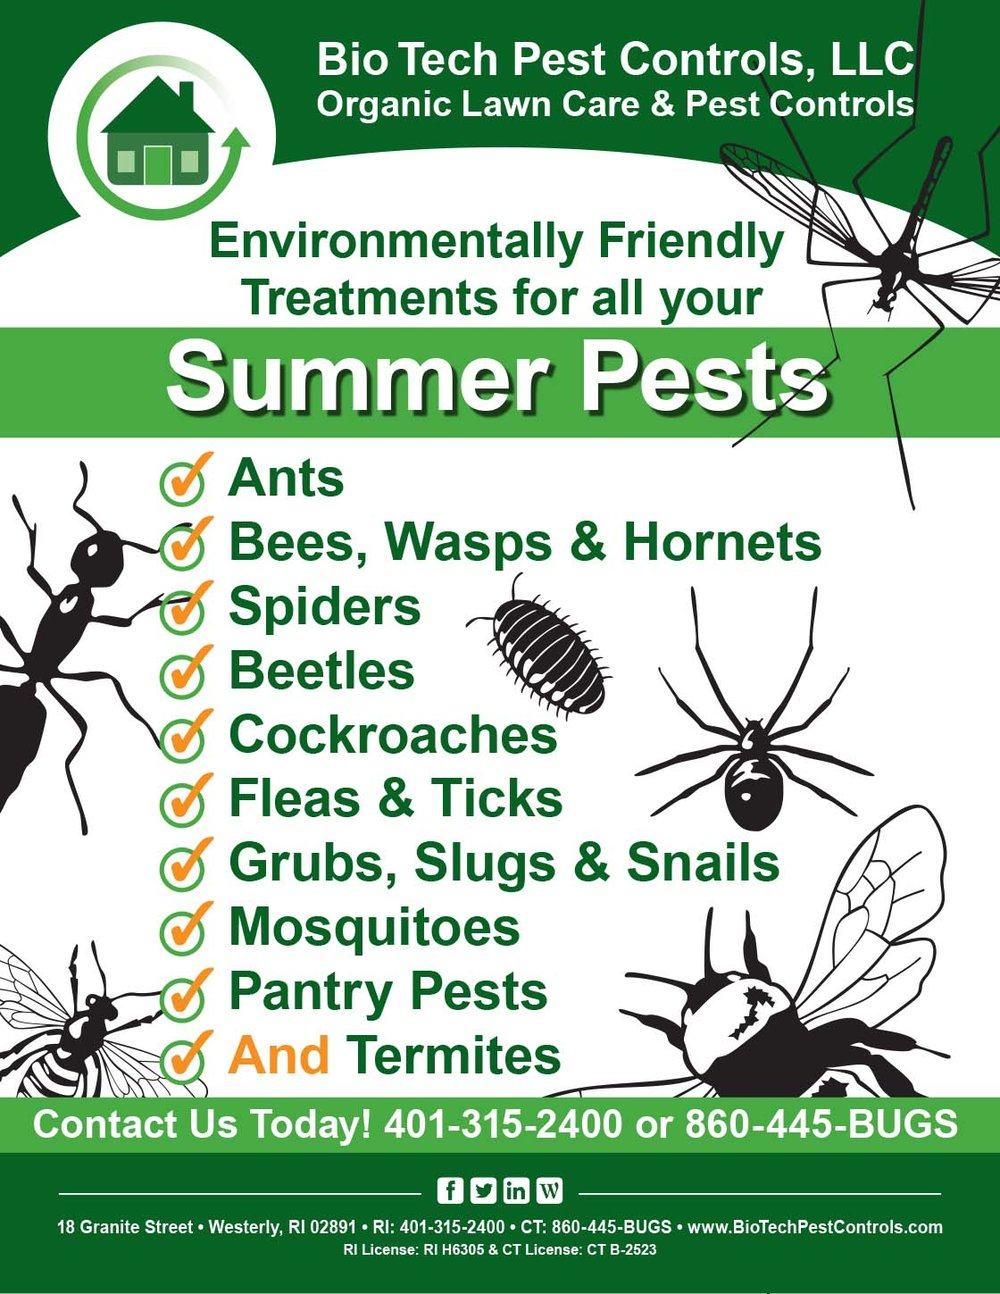 Summer_Pests_Flyer.jpg